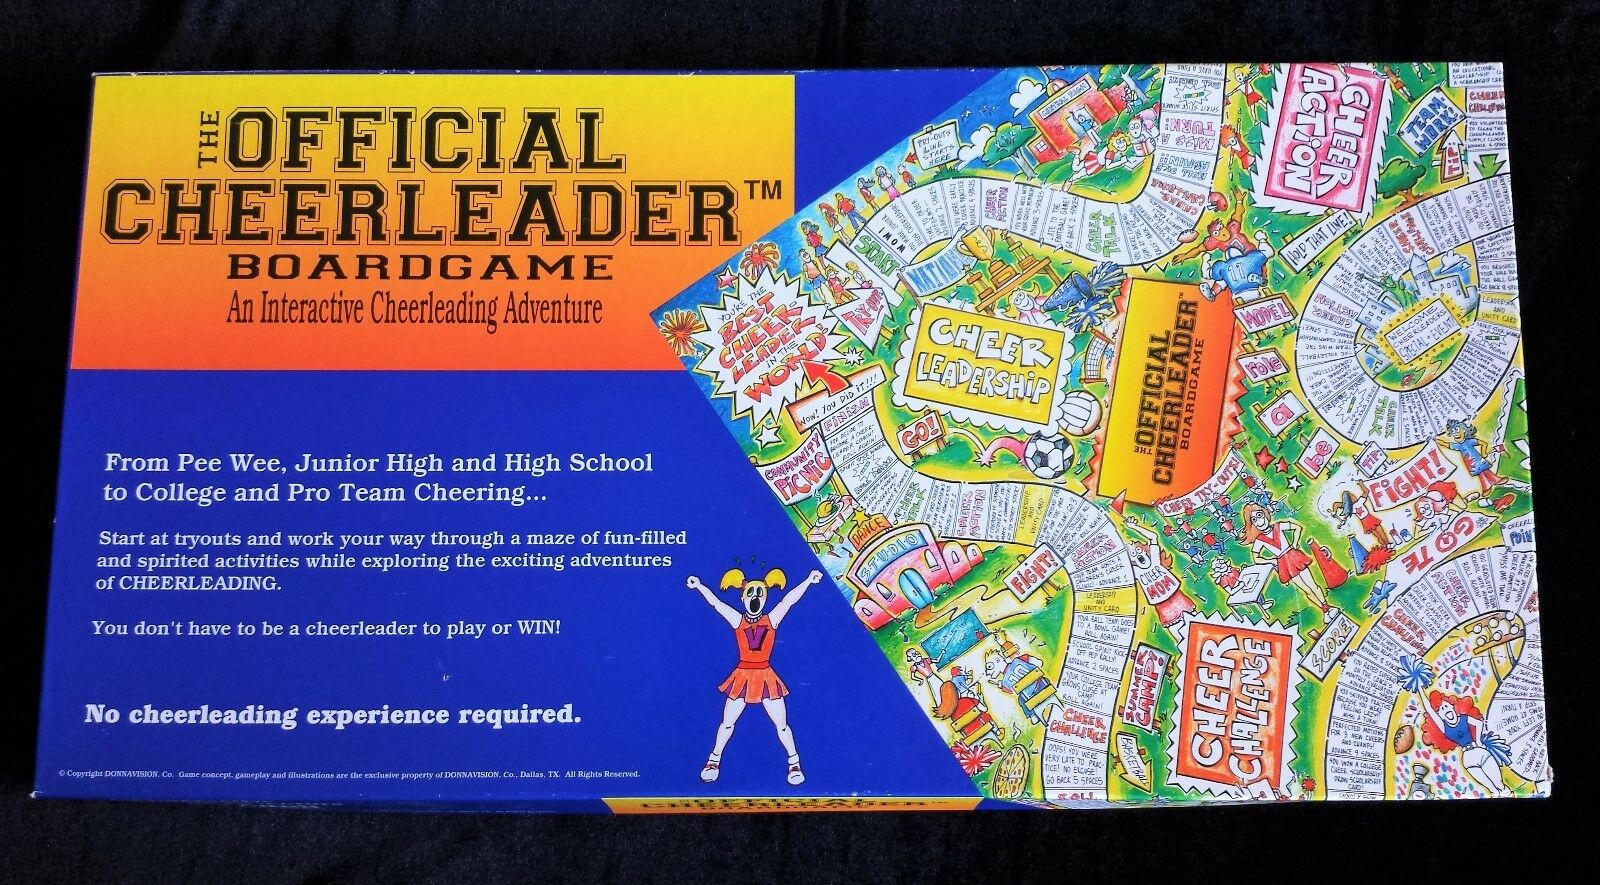 The Official Cheerleader Board Game Complete Gr8 for Cheer Camp & Parties